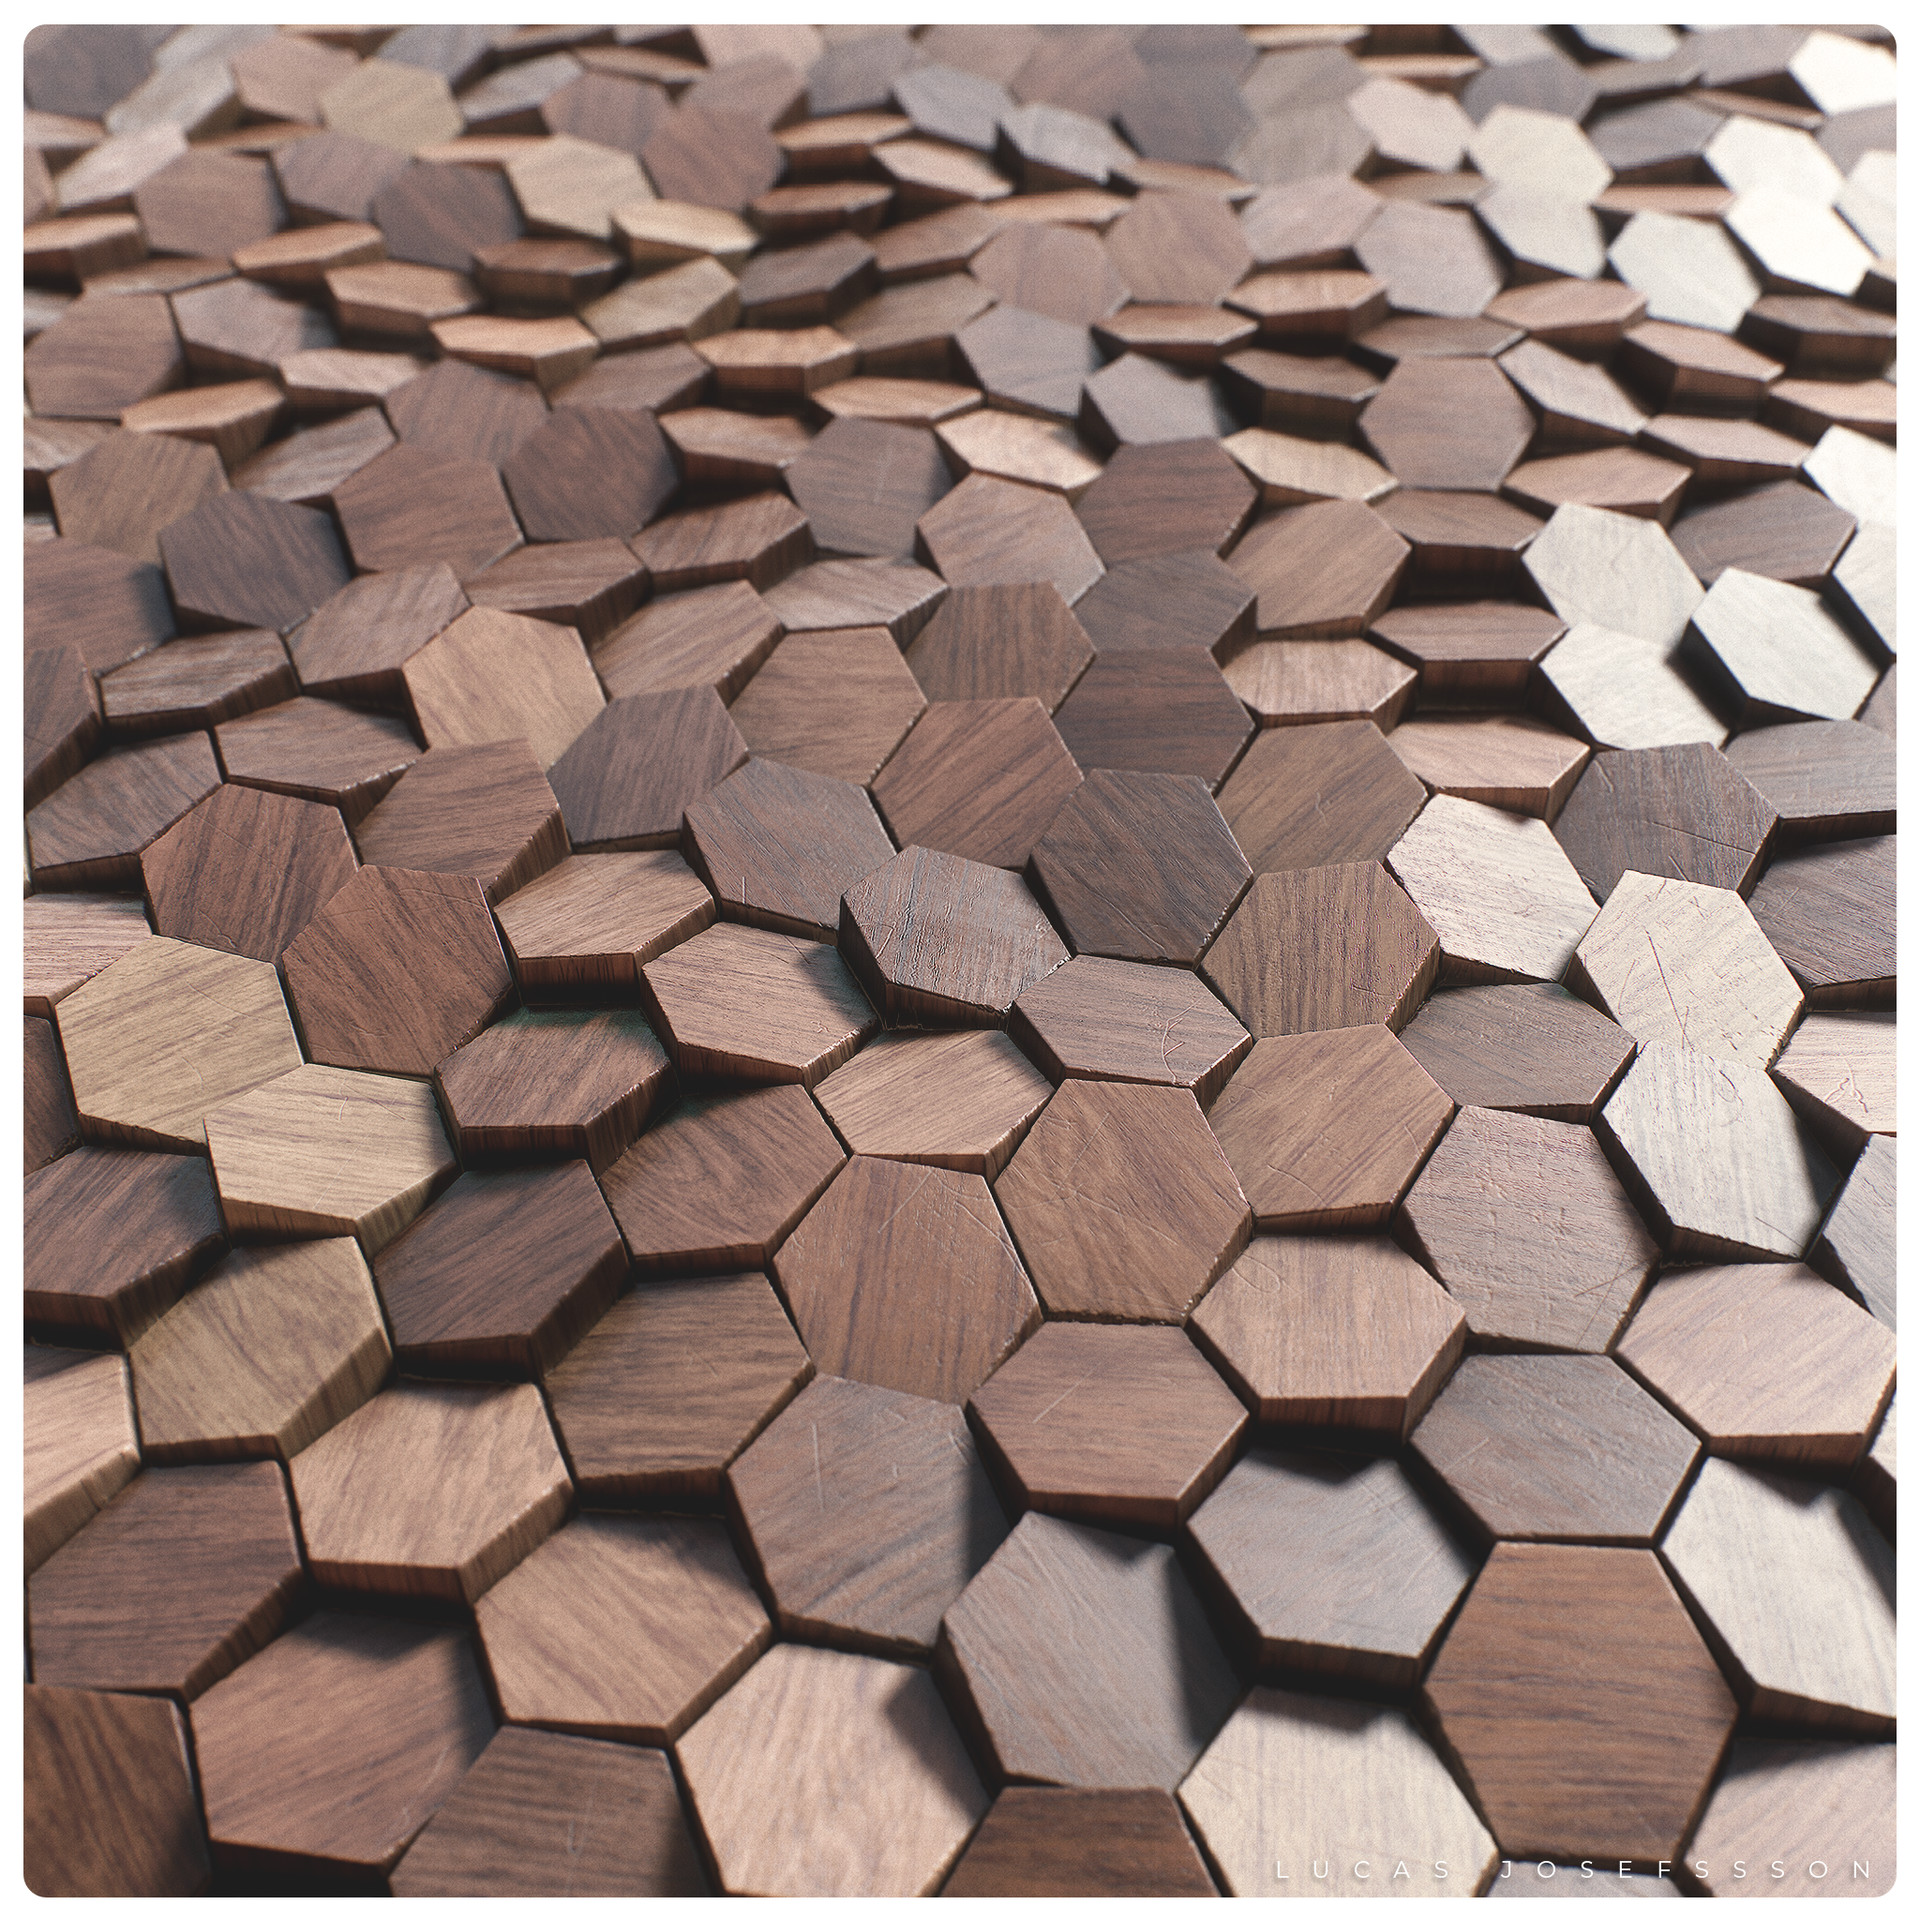 Lucas josefsson wood patterns 01